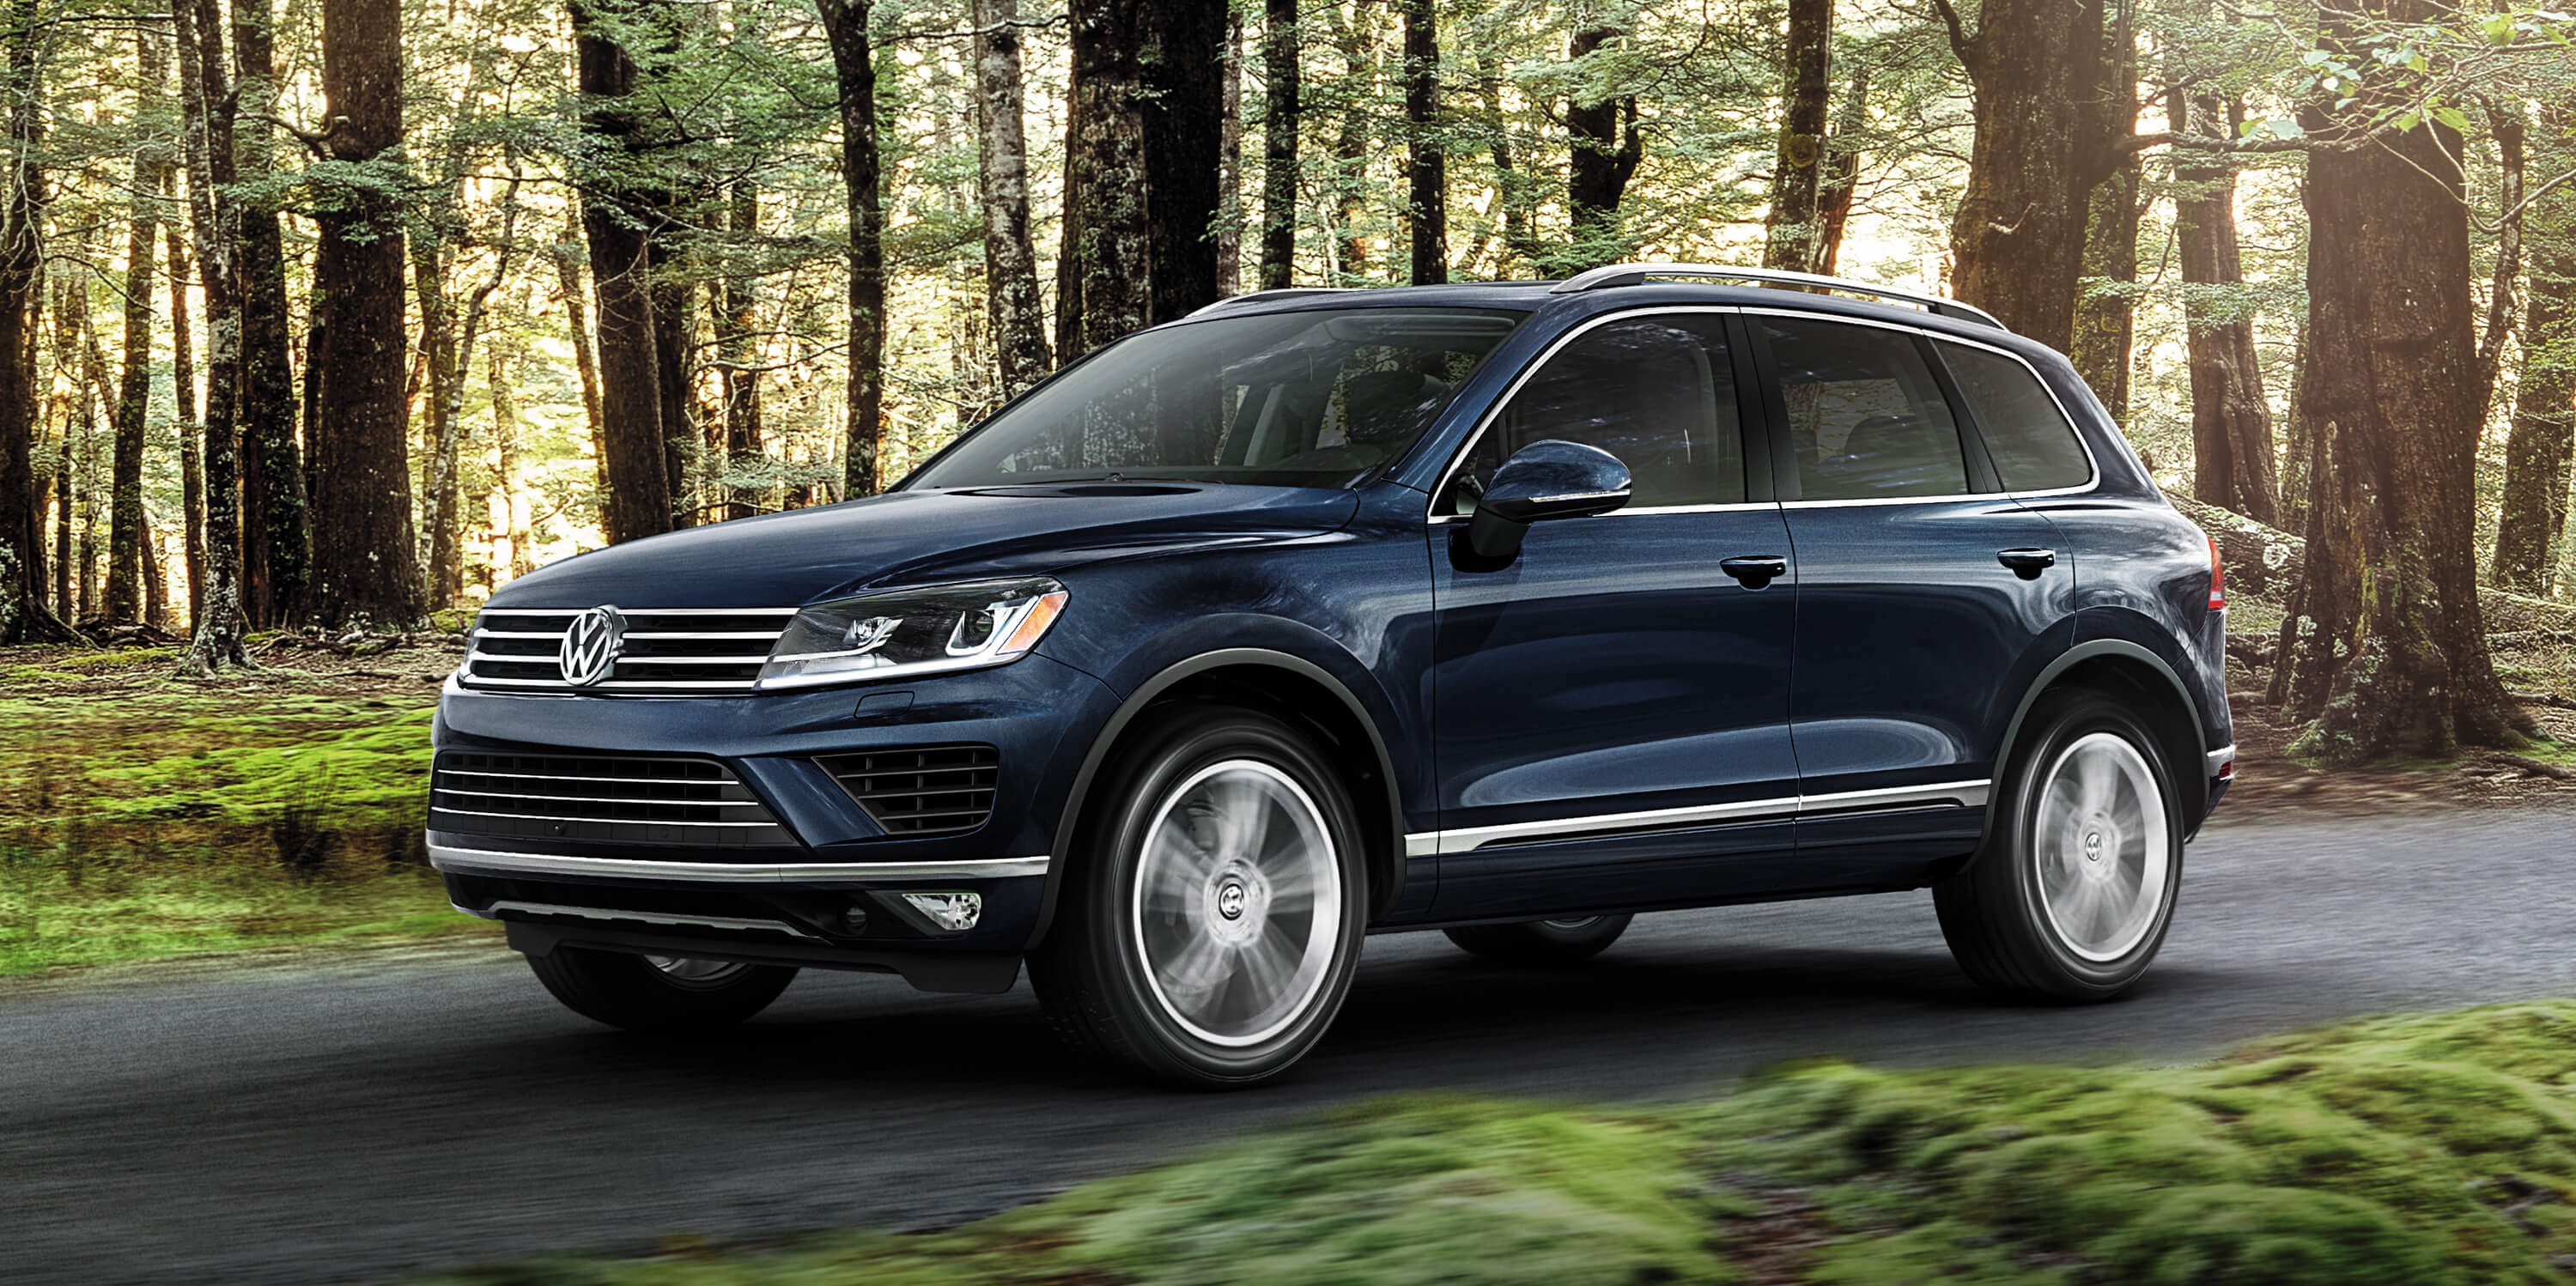 New Vw Touareg Lease And Finance Prices Near Boston Ma